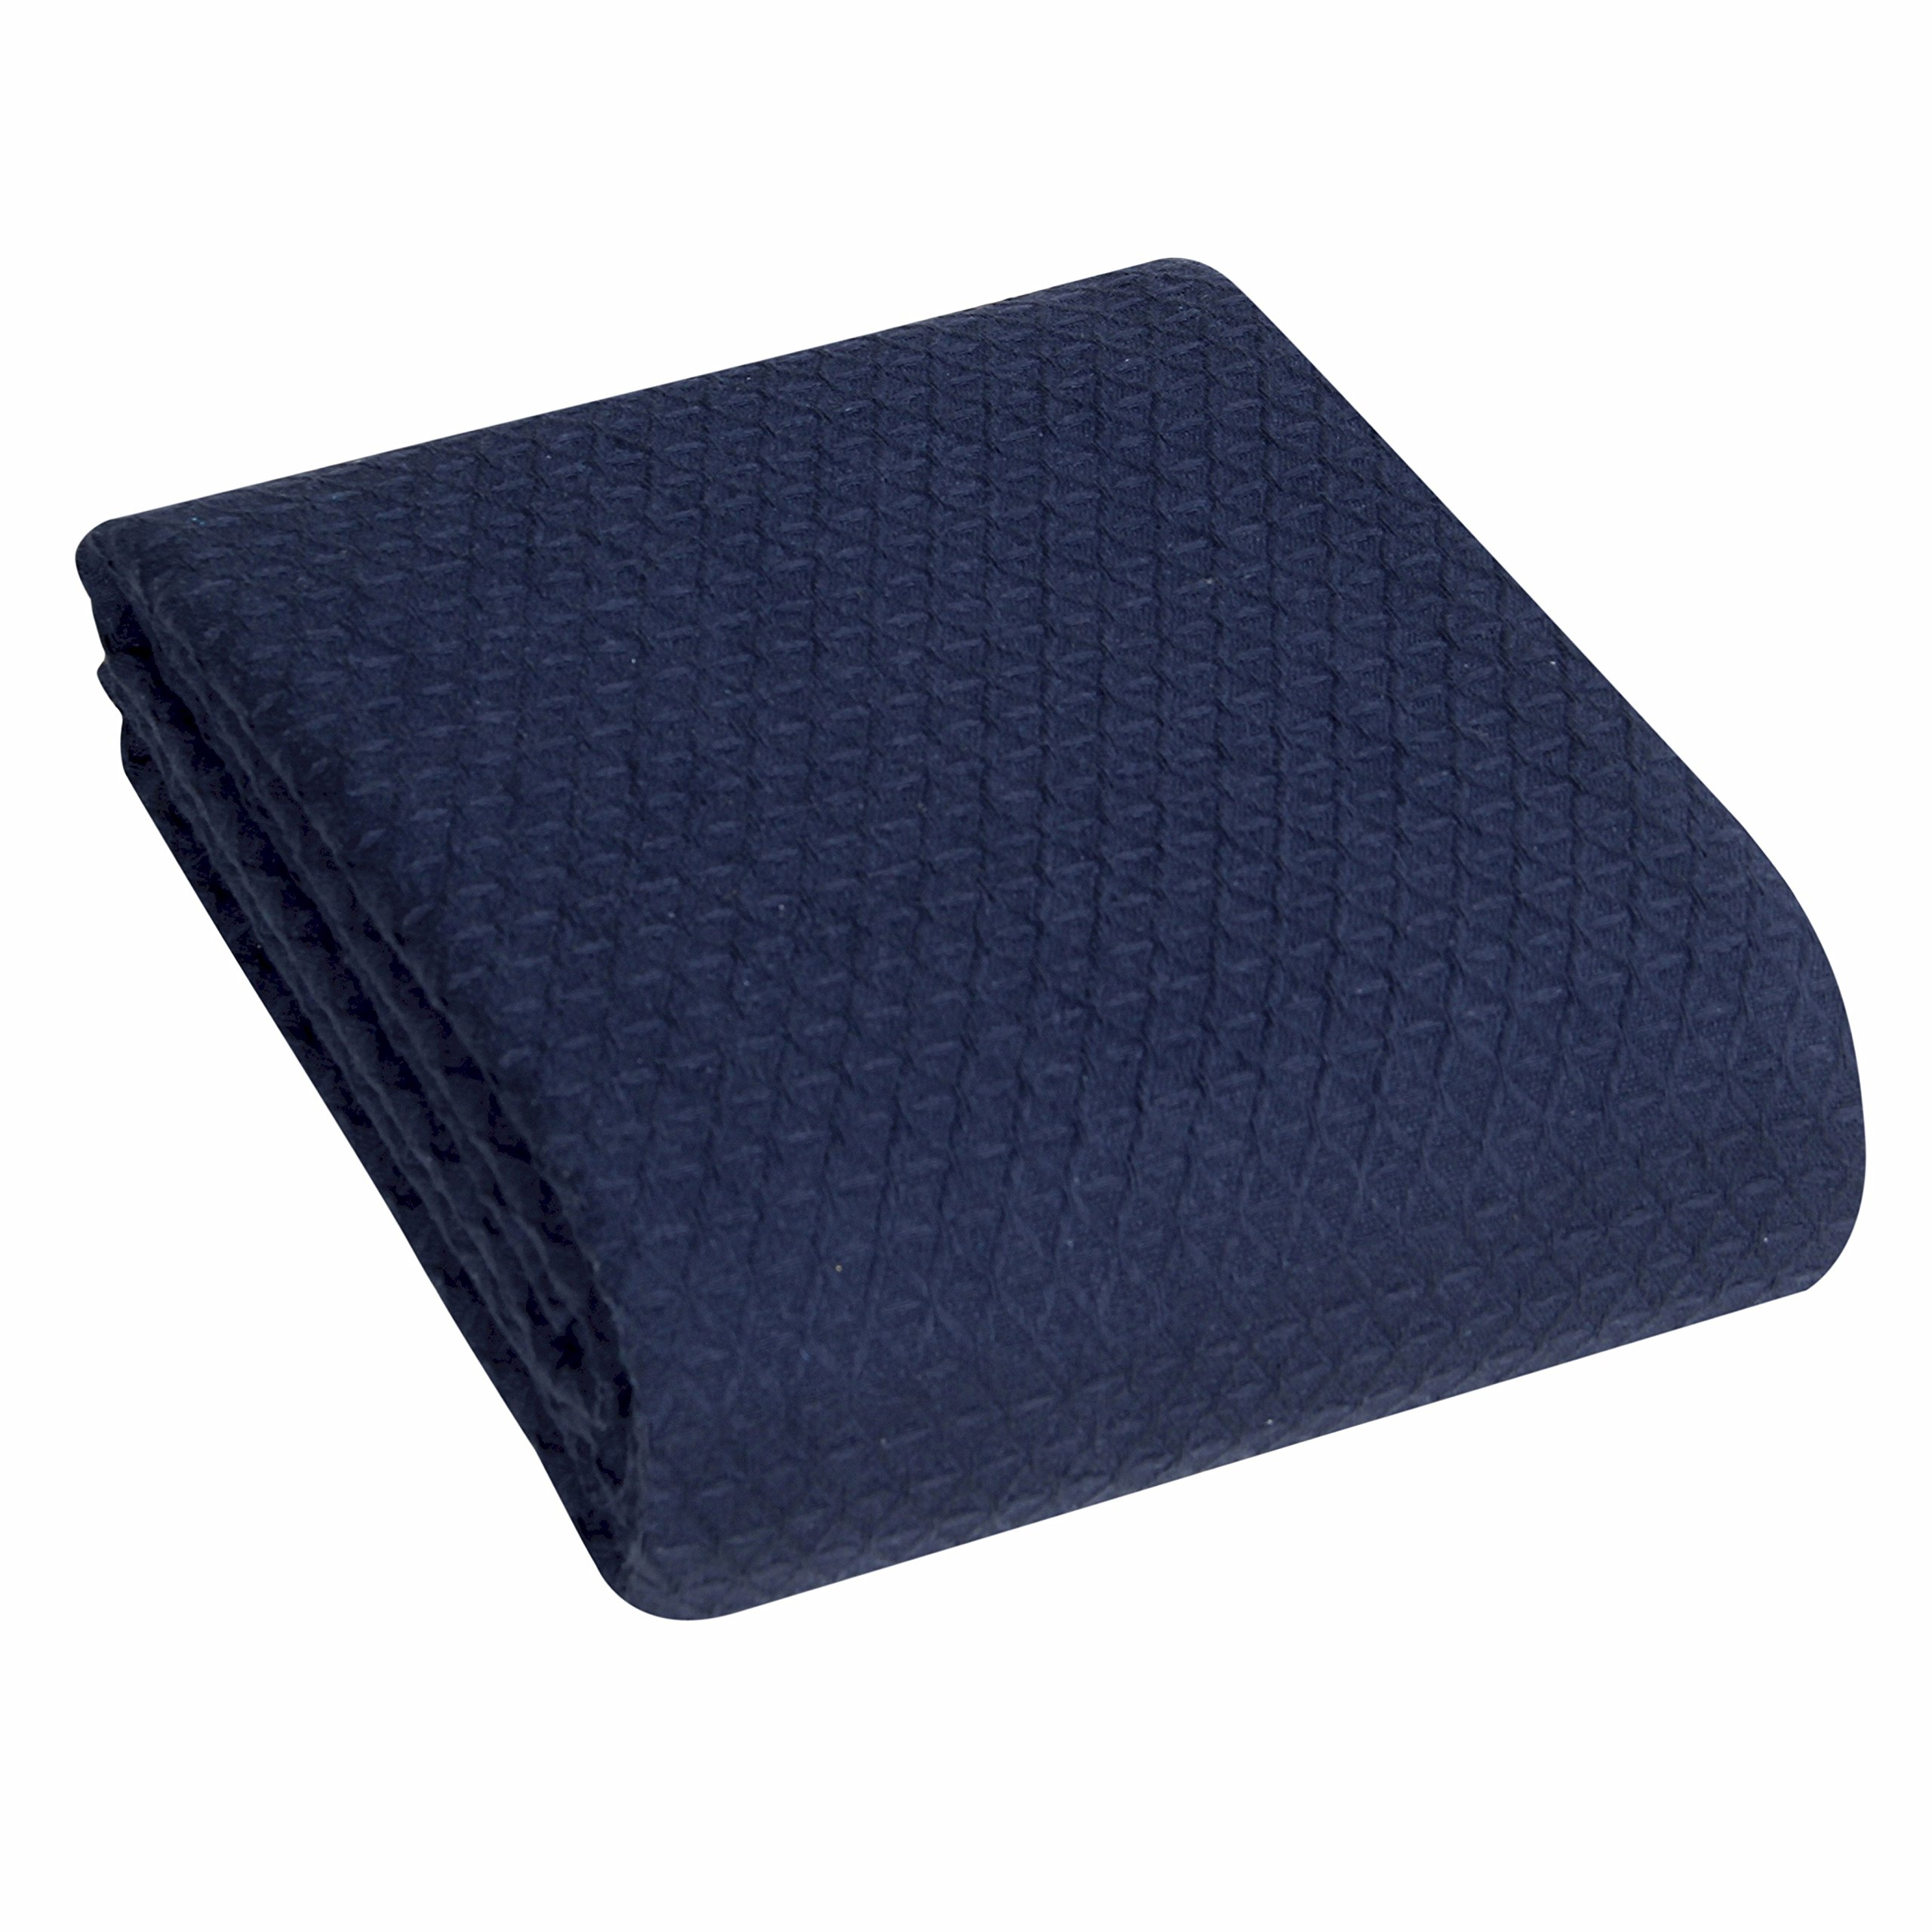 IntradeGlobal Classic All Seasons Super Soft Mediumweight Cotton Blanket DARK NAVY, King